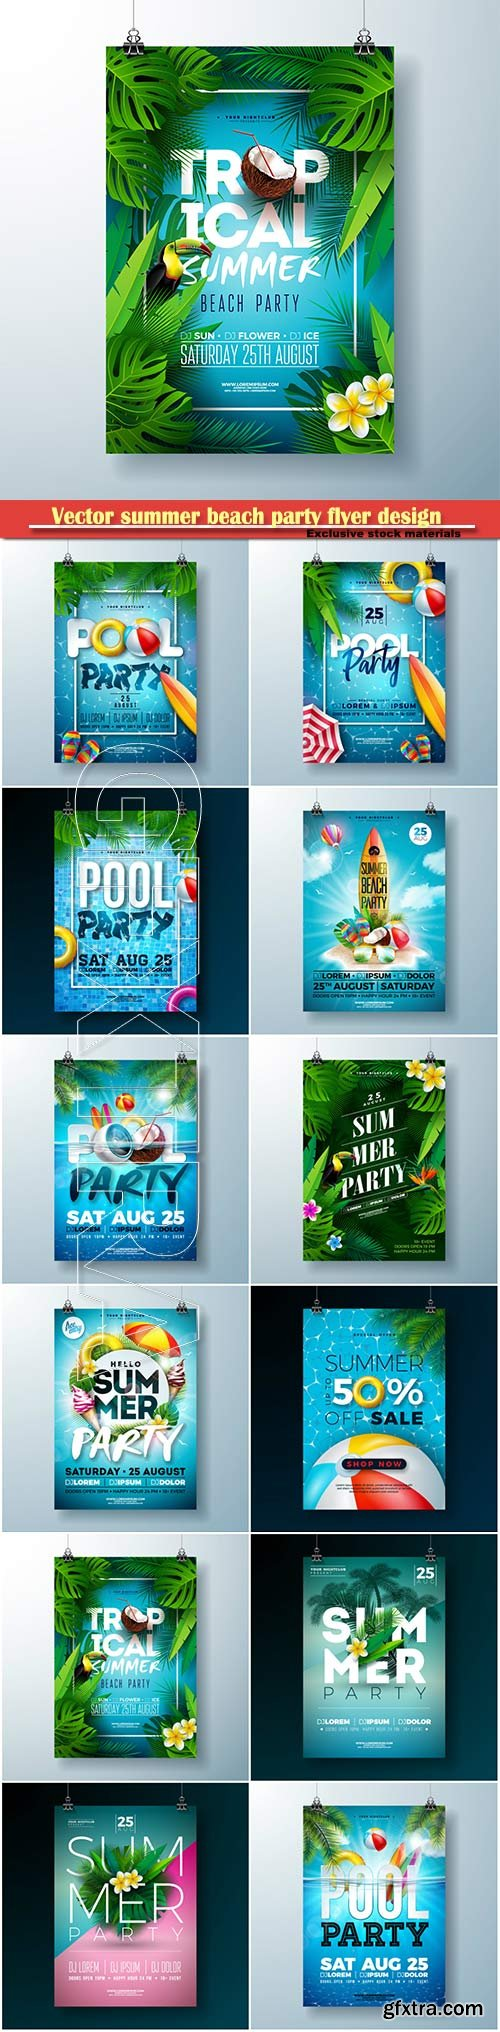 Vector summer beach party flyer design # 3